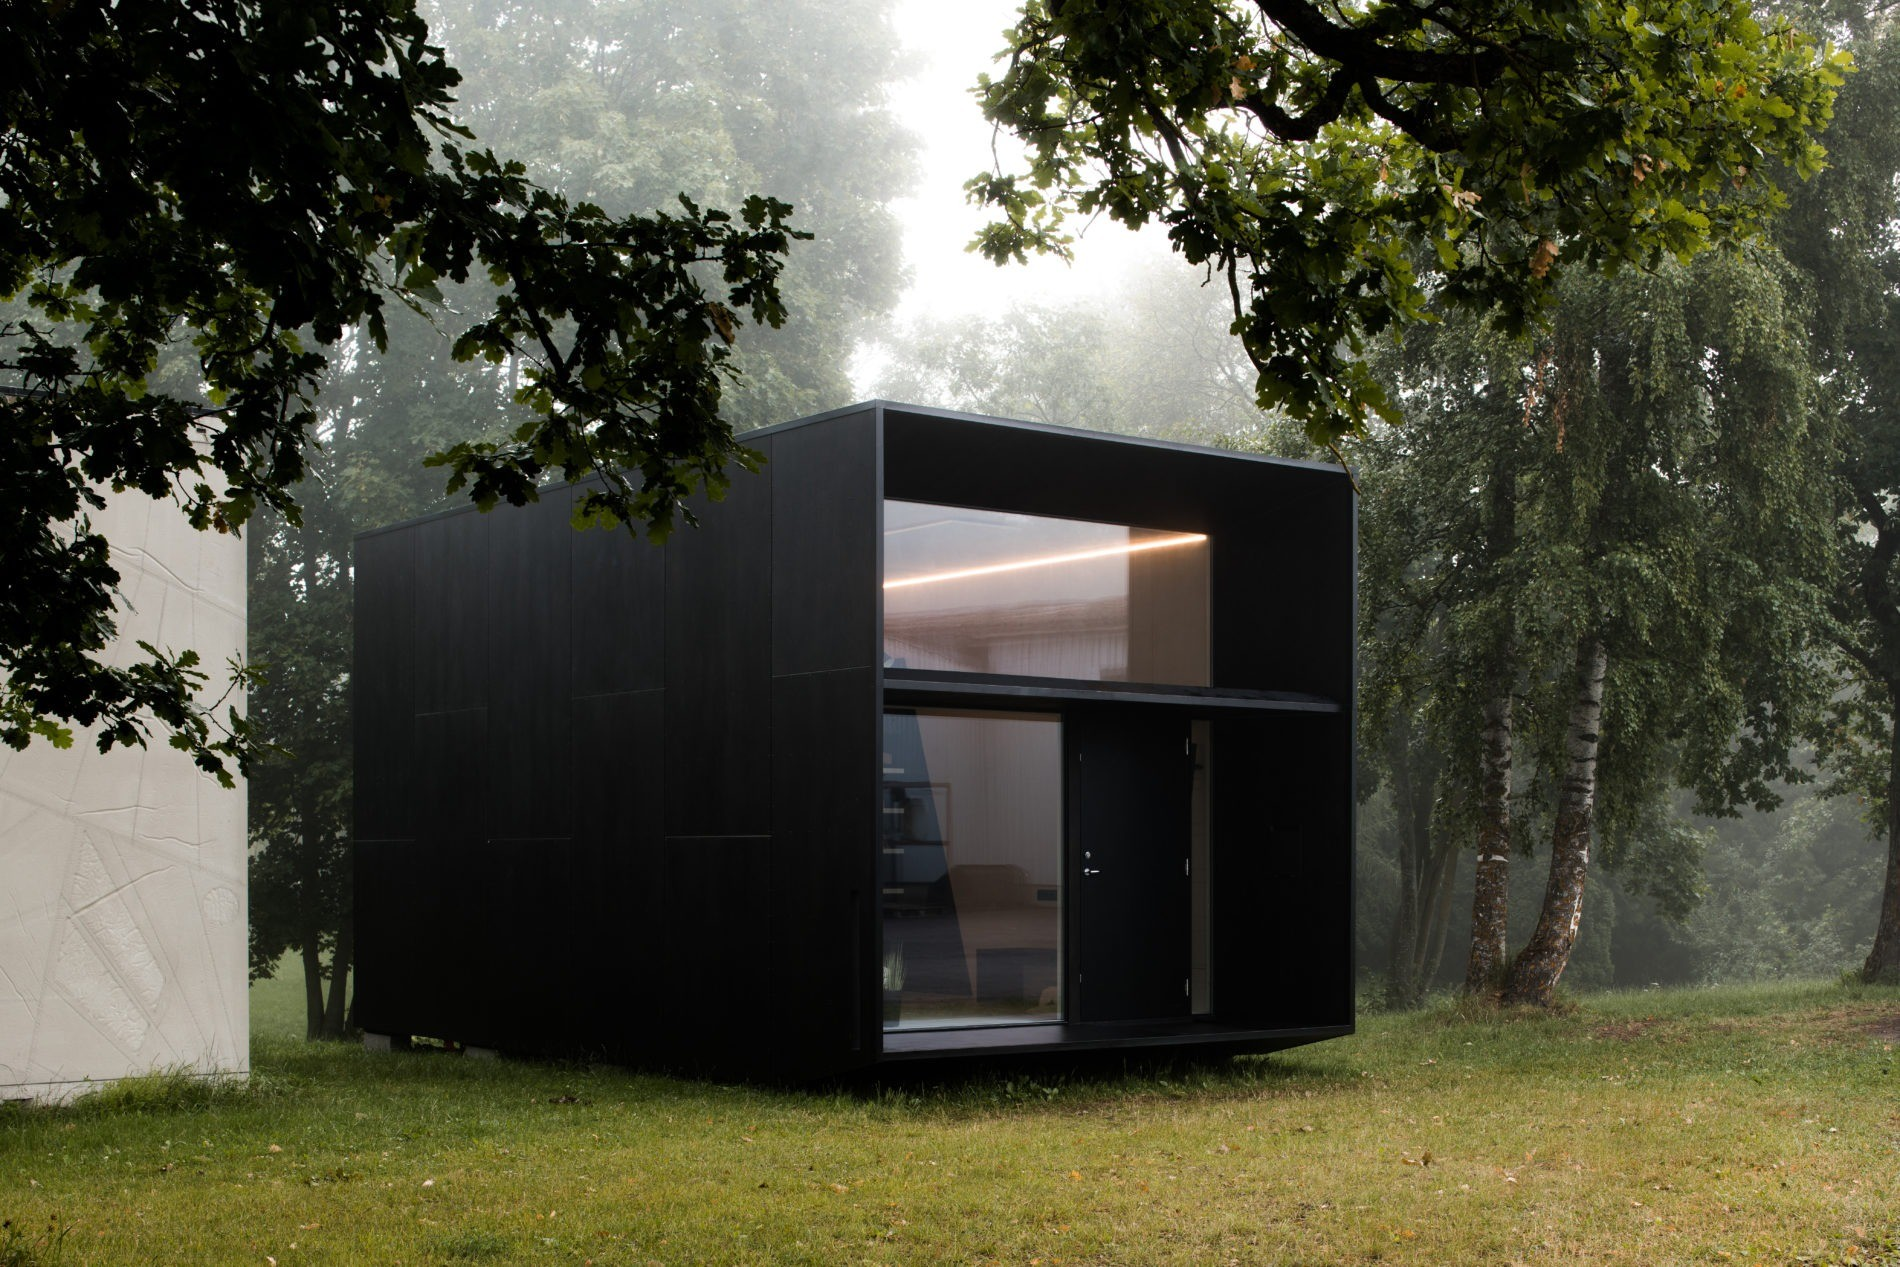 A white modular home in forest in the fall, with a large window visible, surrounded by trees and grass.